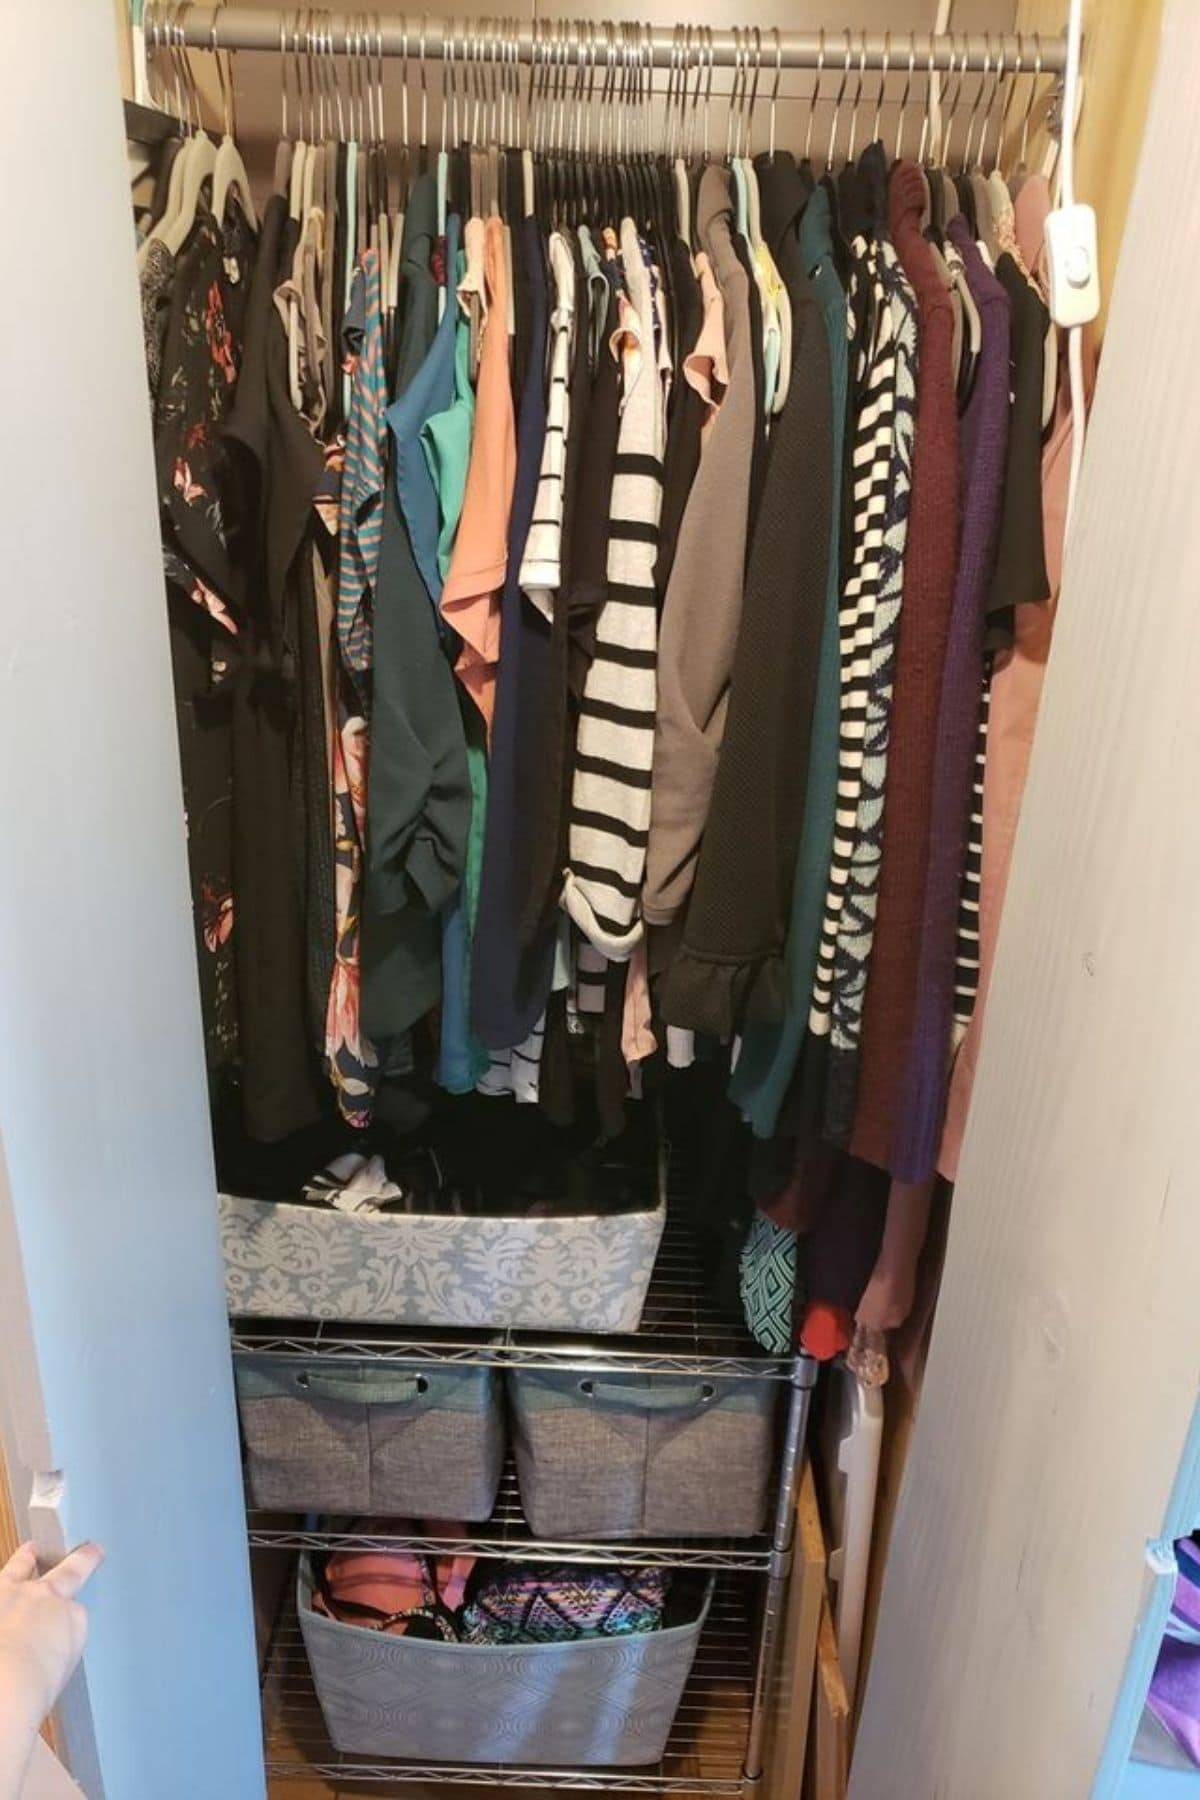 Closet with clothes hanging and baskets under on floor